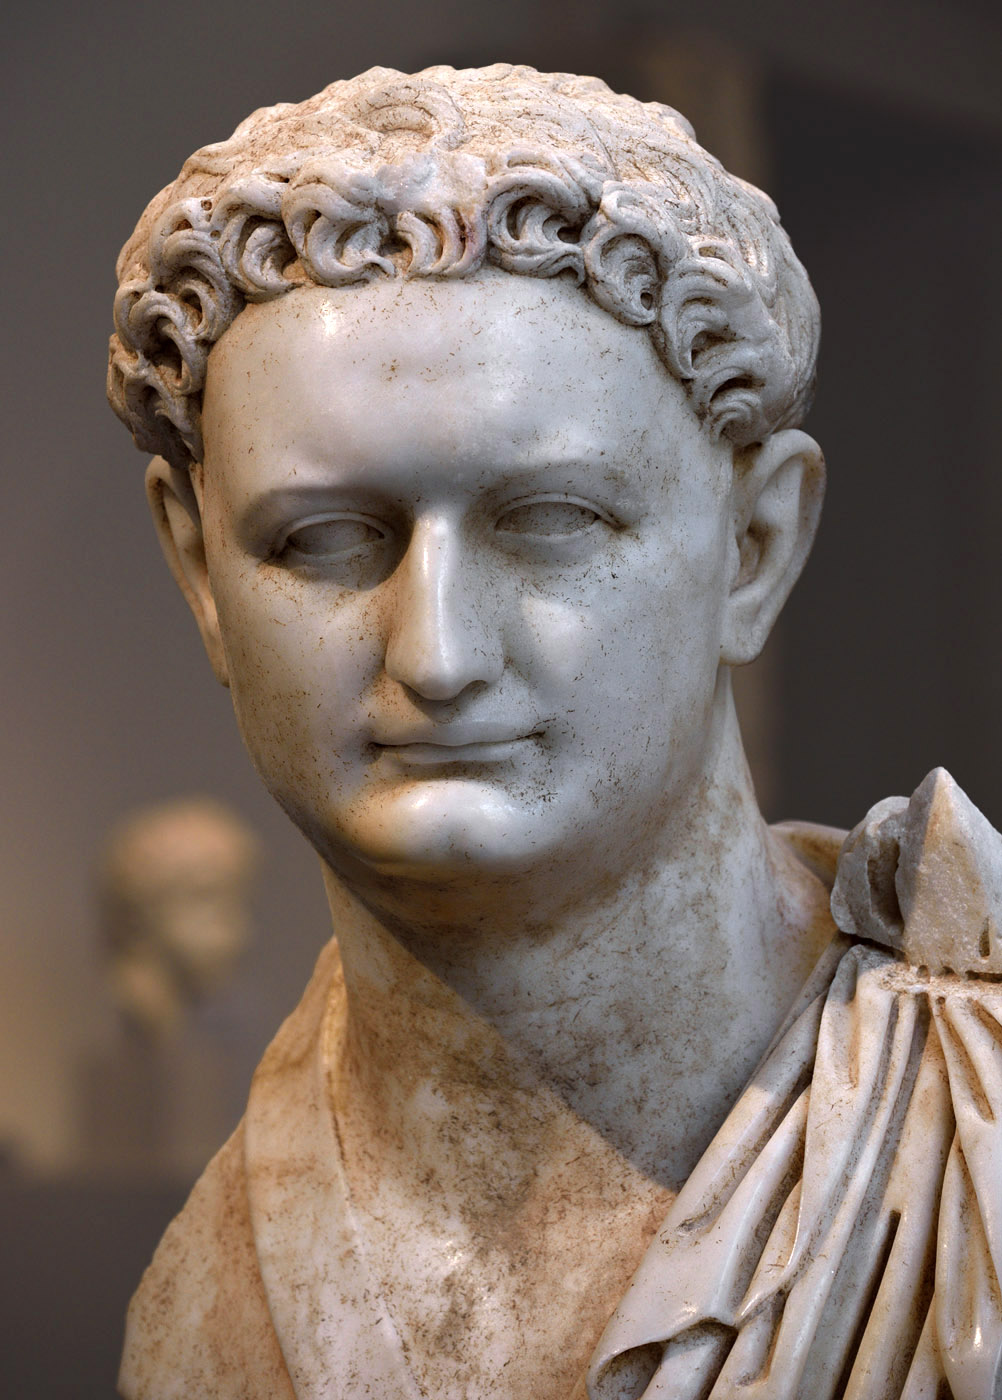 Domitian (close-up). Marble. Ca. 90 CE. Inv. No. I.2015.40. New York, the Metropolitan Museum of Art